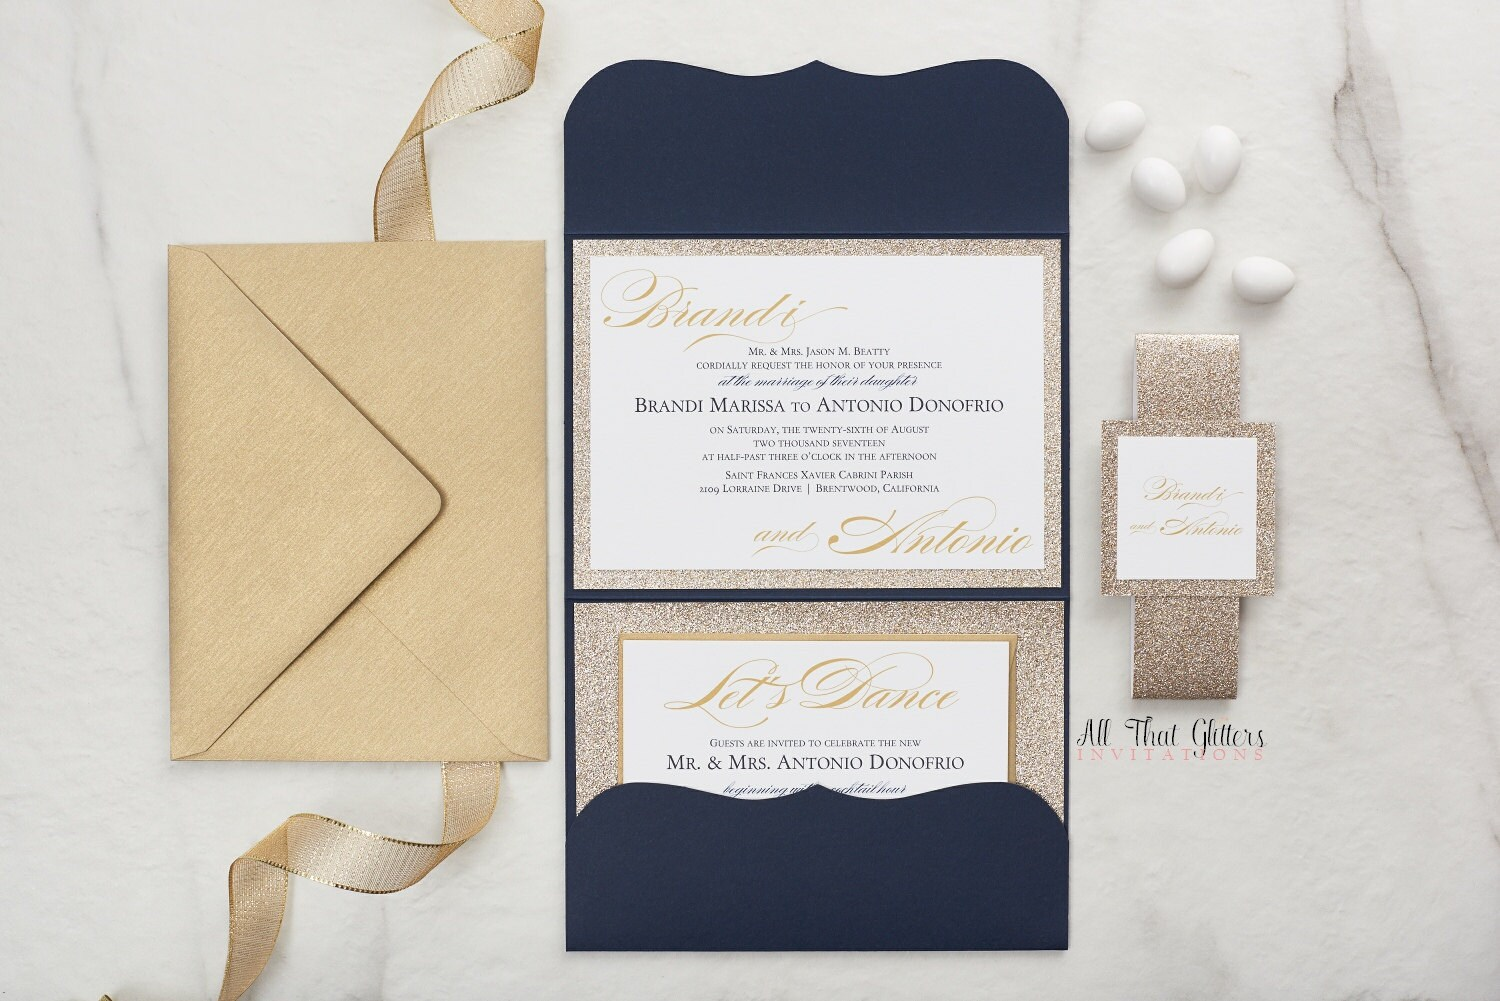 Royal Blue And Gold Wedding Invitations: Wedding Invitation In Navy Blue And Gold Glitter Royal Blue